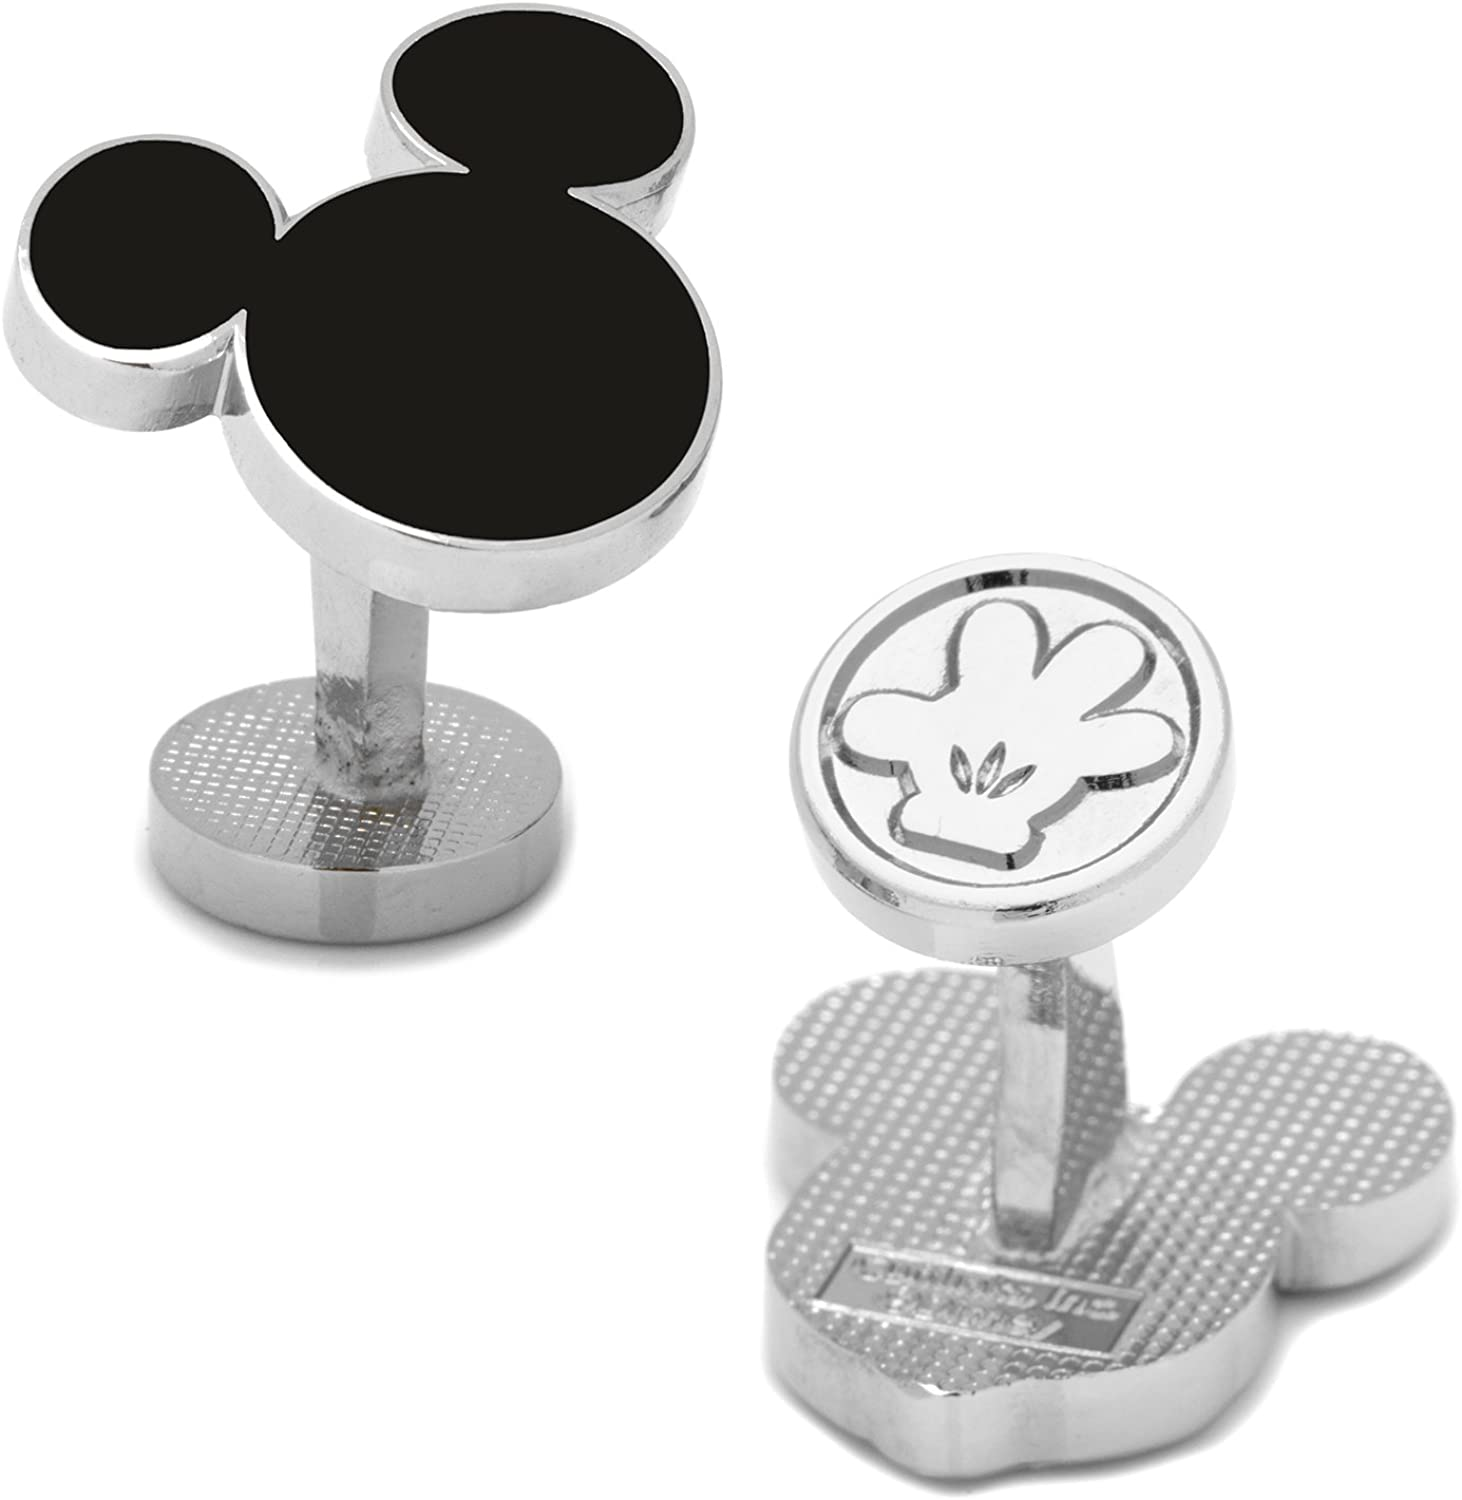 Disney Mickey Mouse Silhouette Cufflinks, Officially Licensed